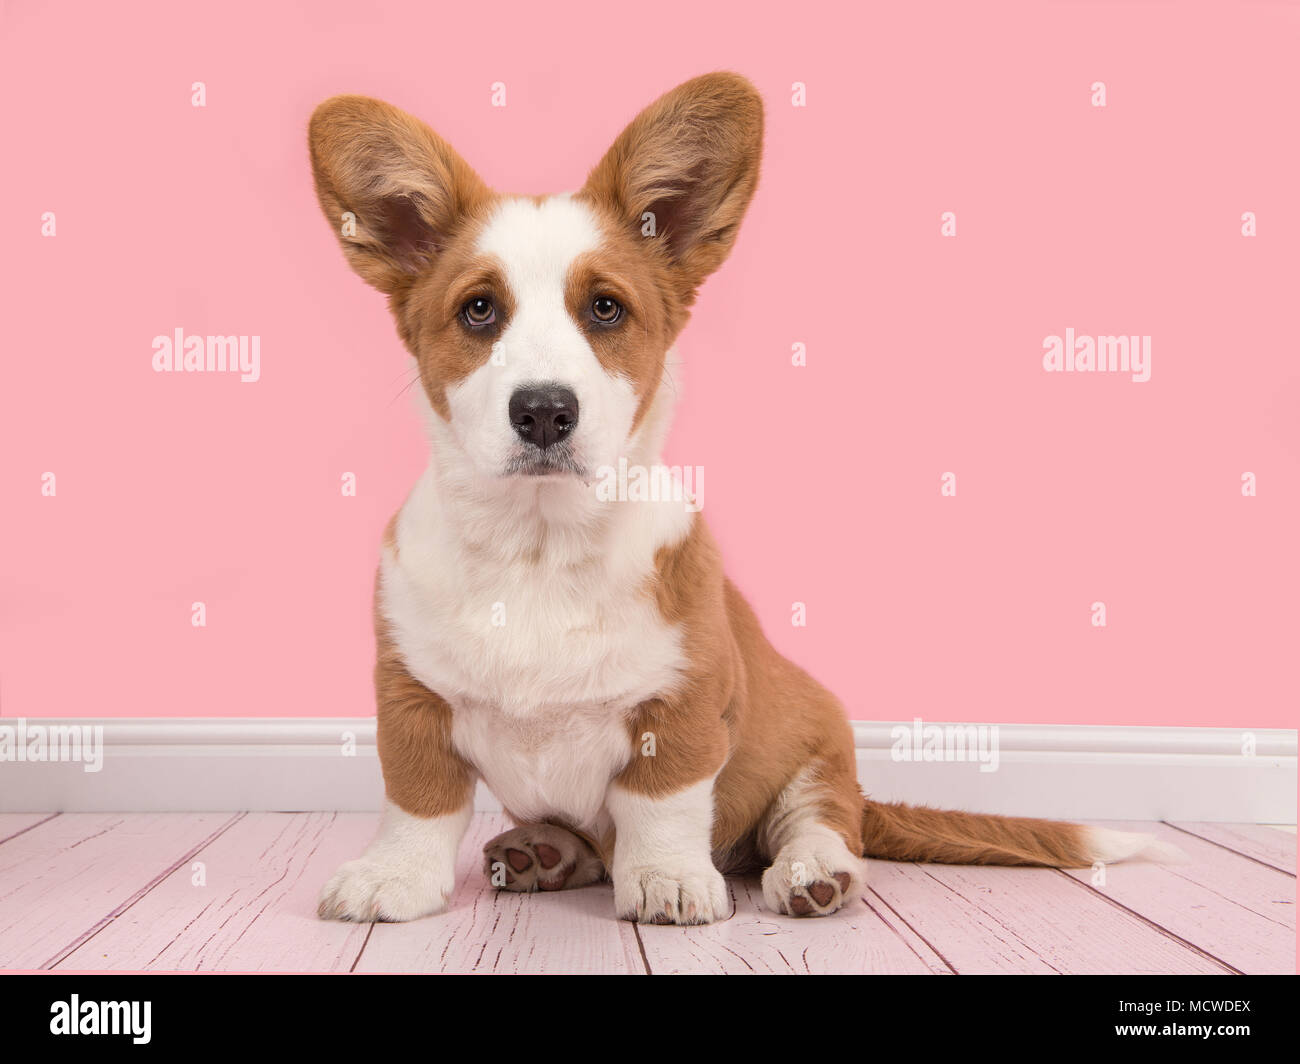 Cute welsh pembroke corgi puppy sitting looking at the camera on a pink living room setting Stock Photo